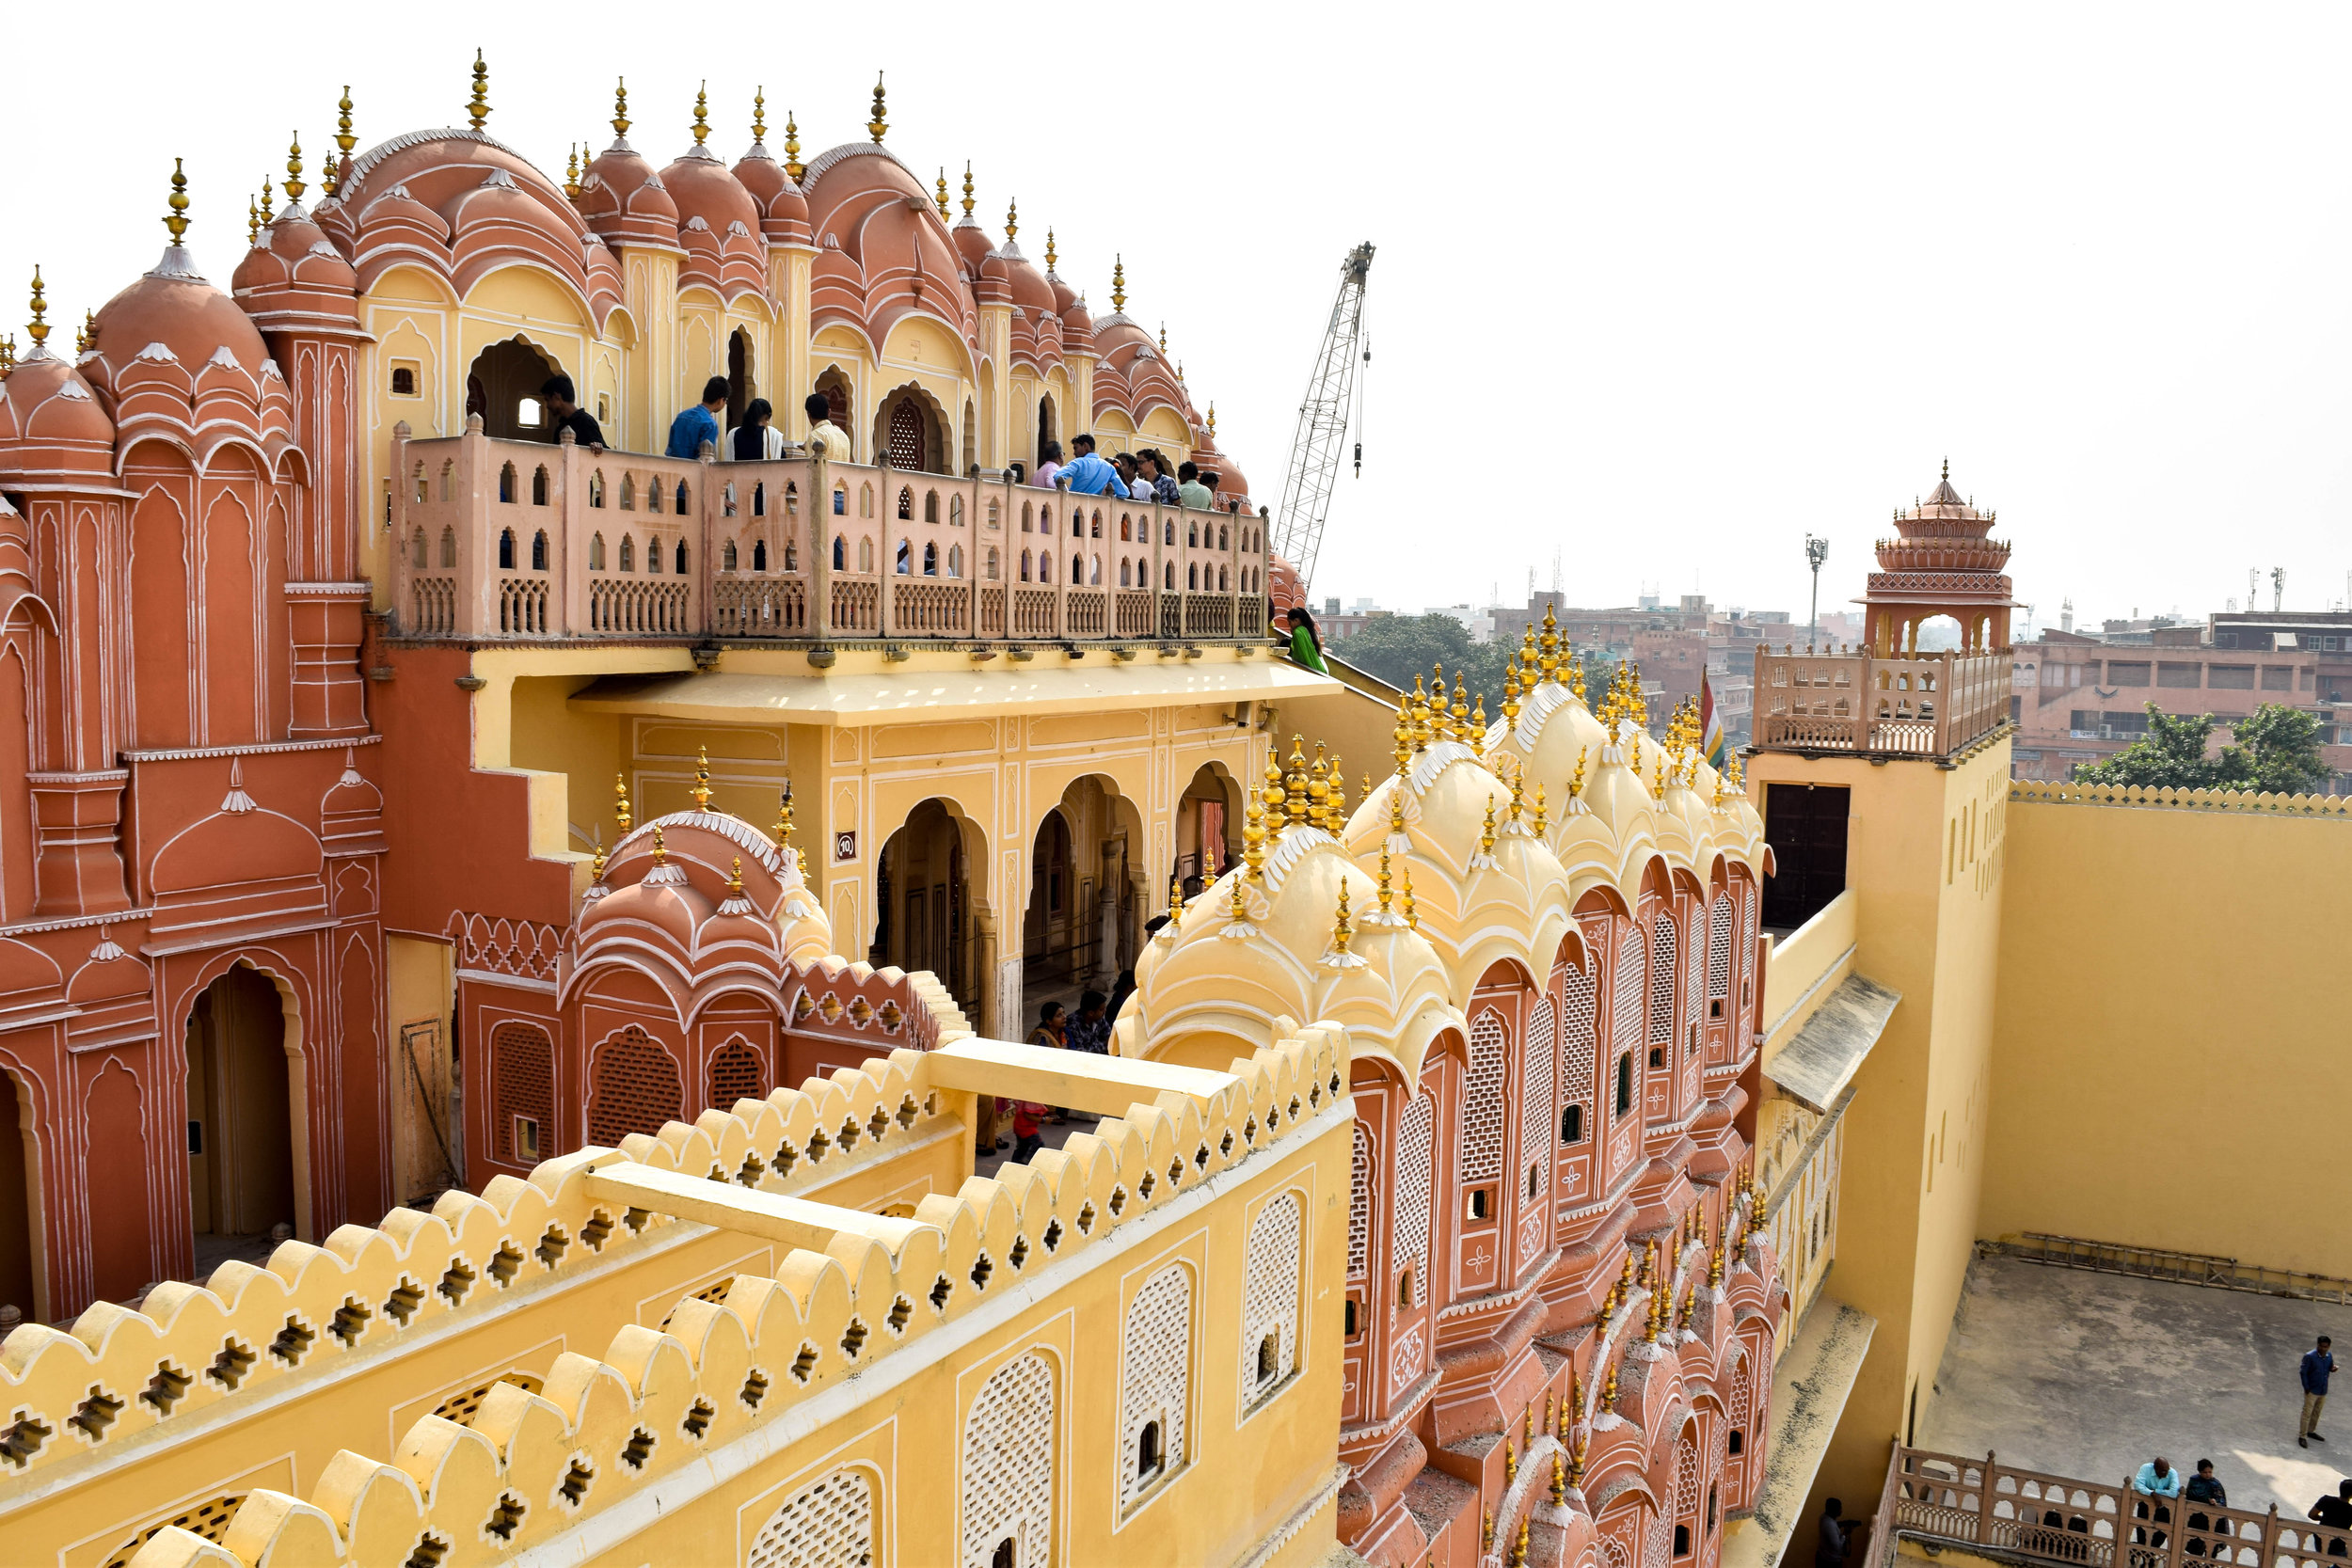 Back view of the Hawa Mahal. Not as cool as the front, but like, almost.